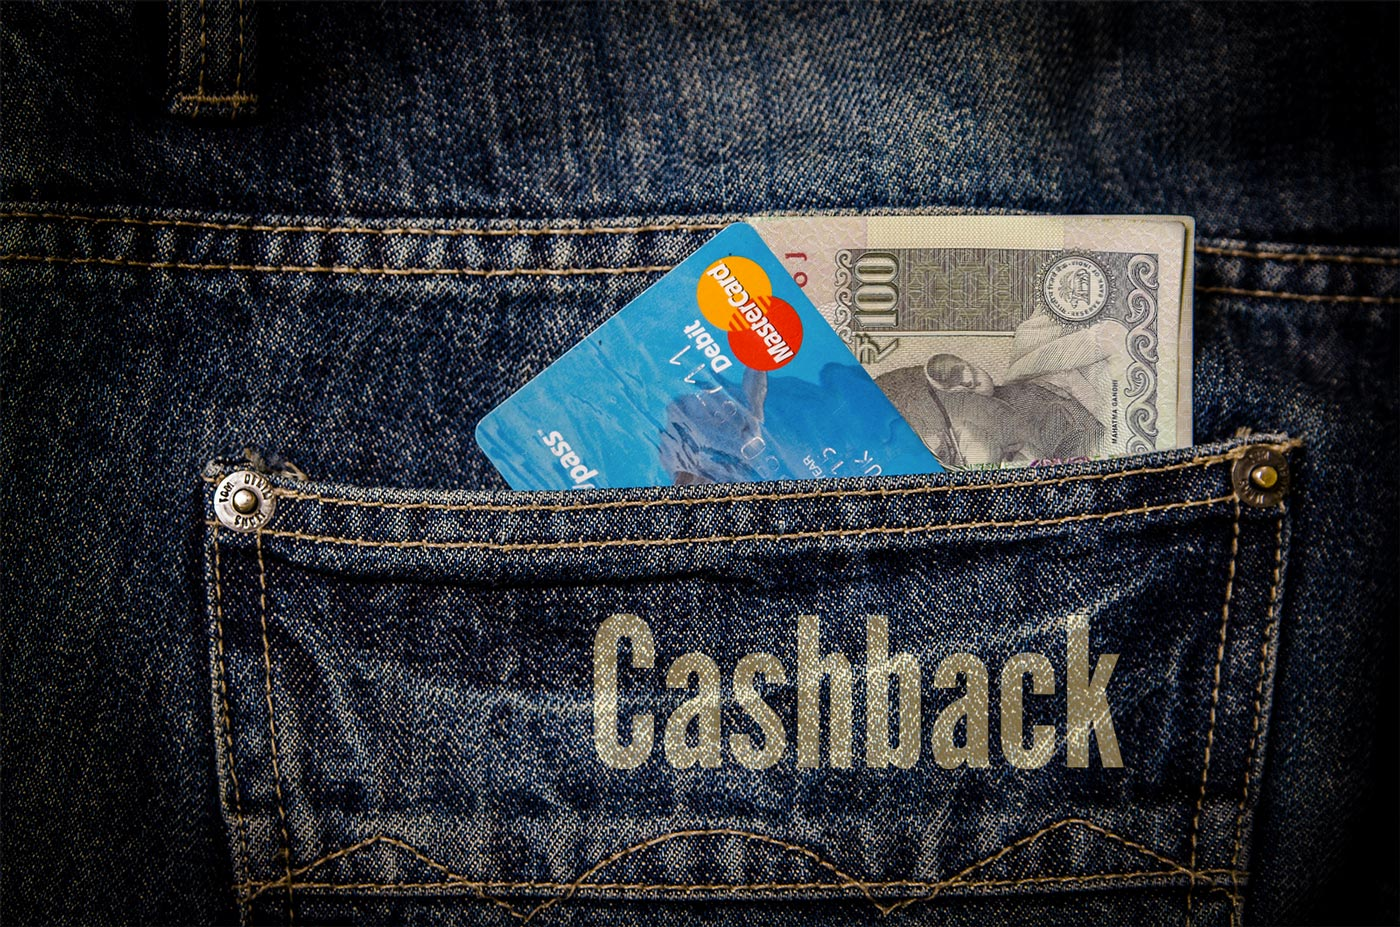 Decoding the Smartest Method of Marketing: The Cashback Scheme